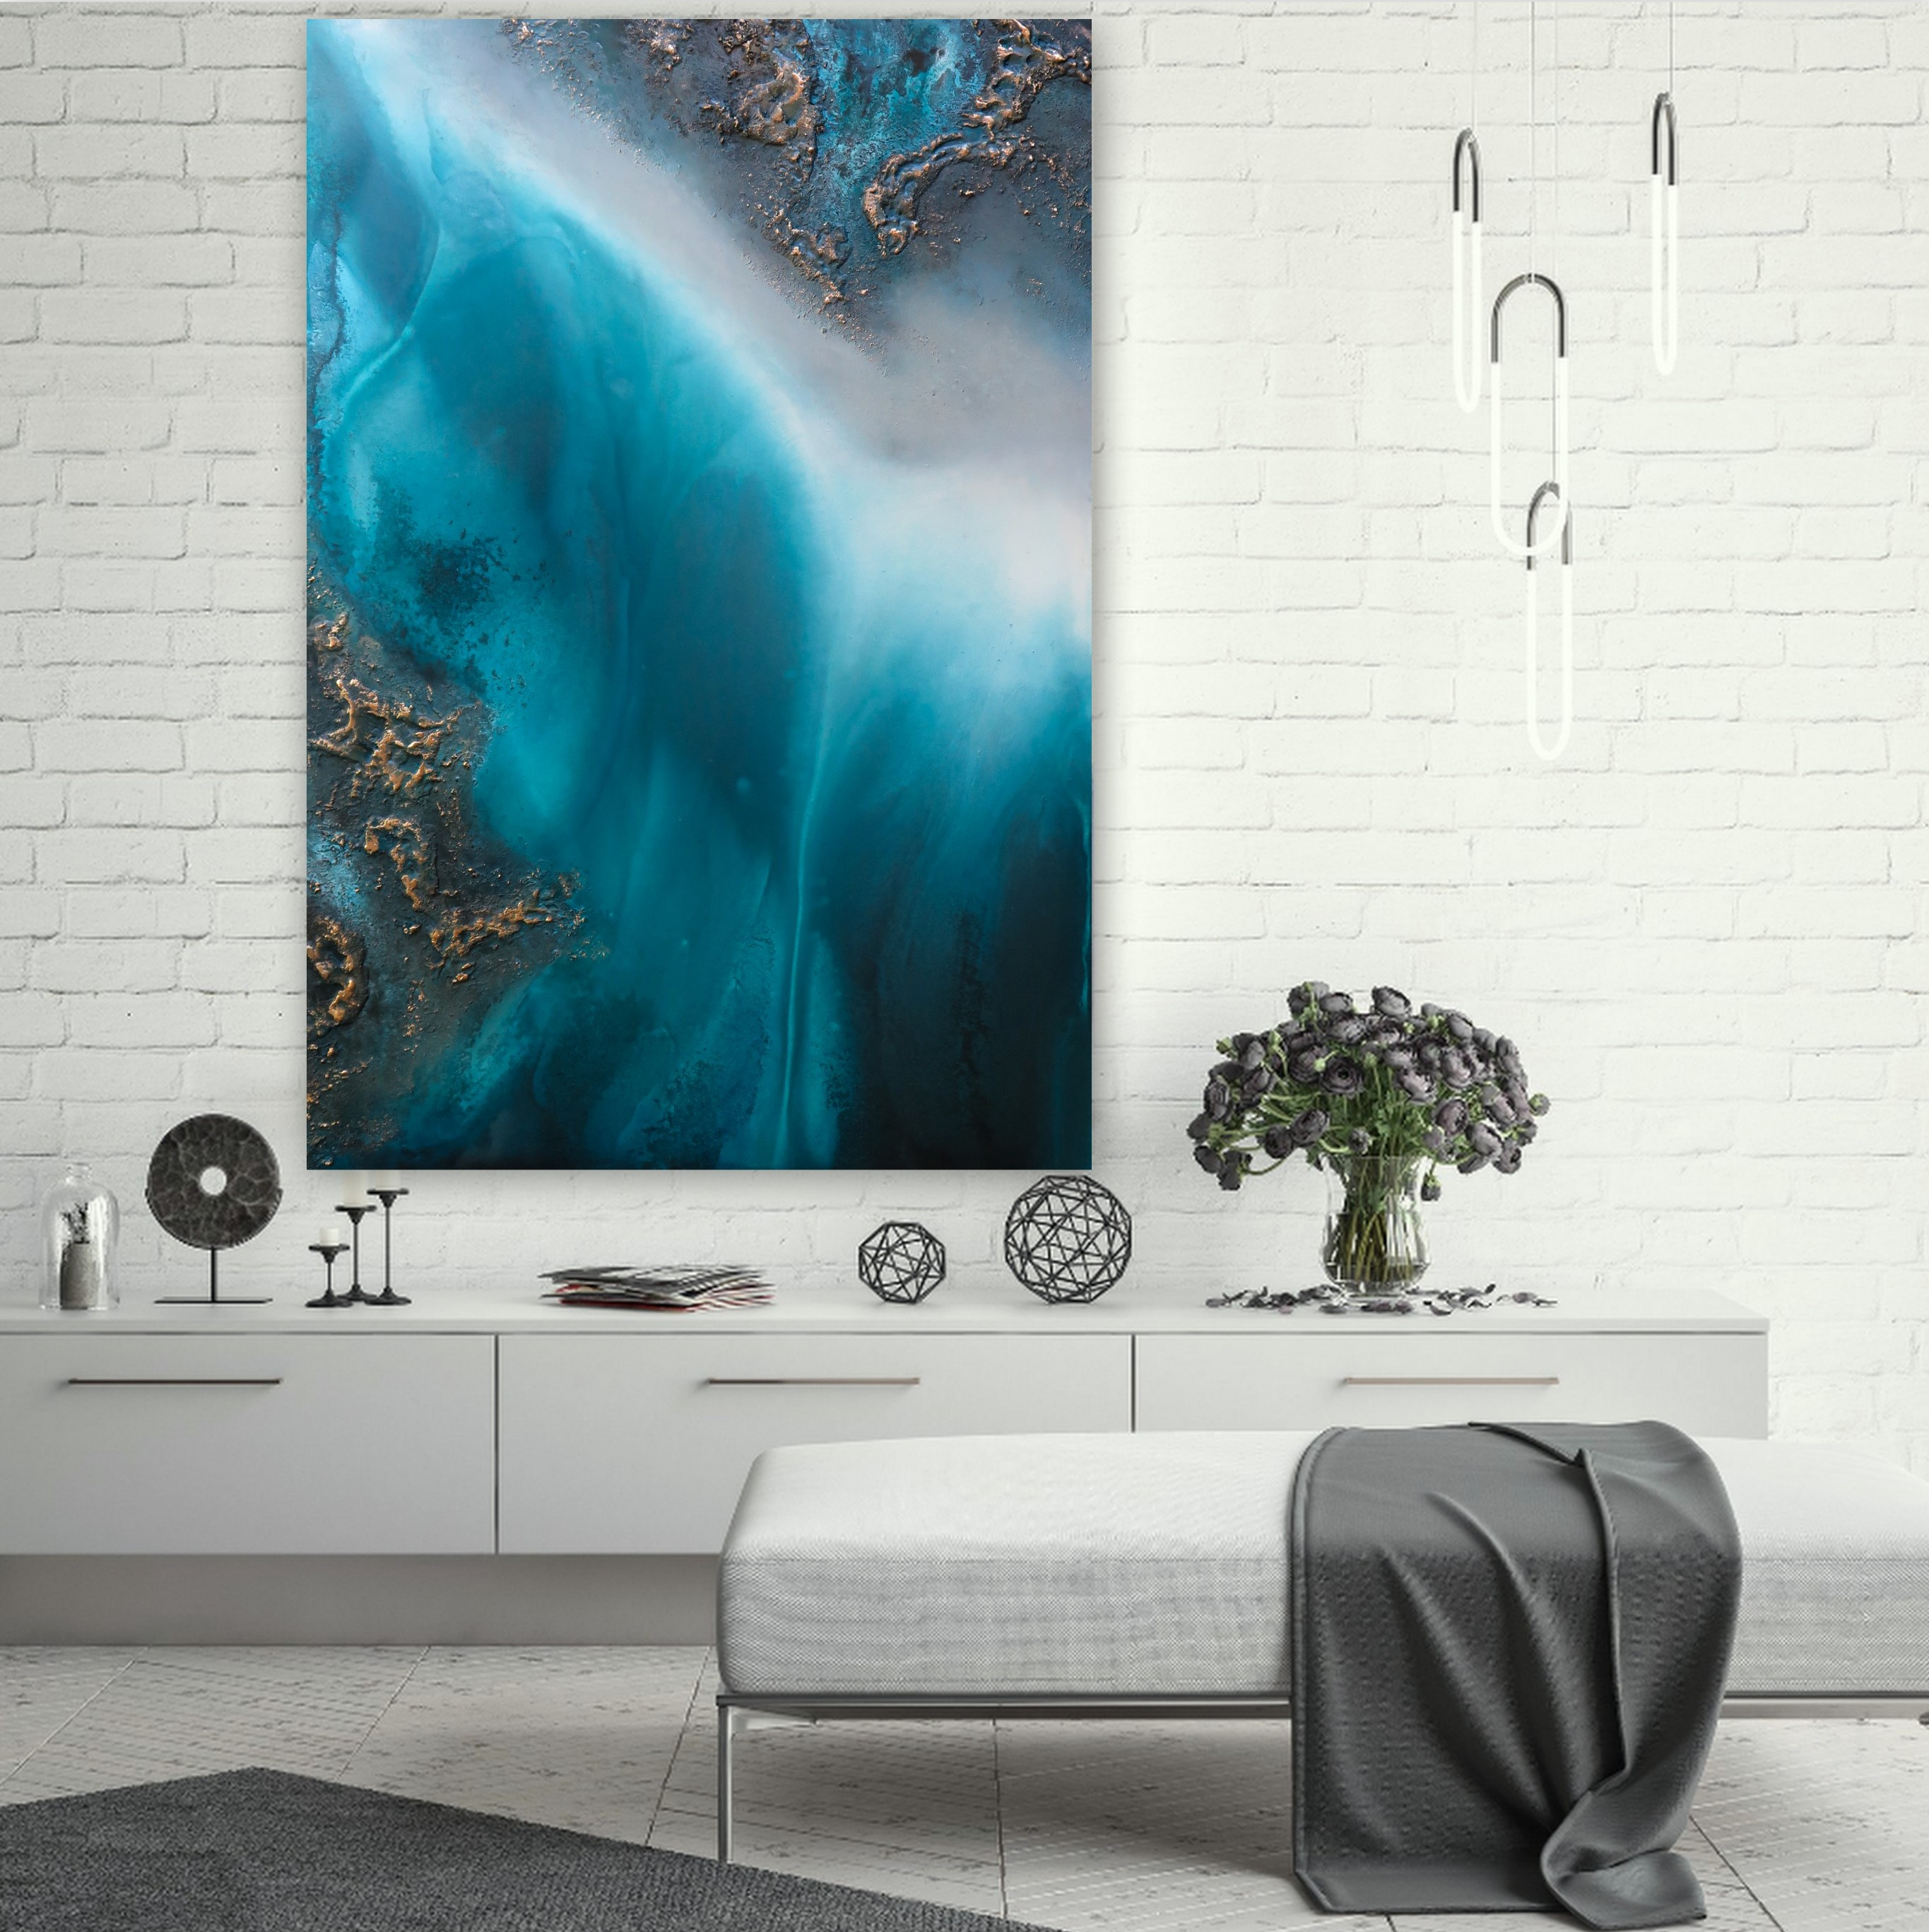 Ocean Art For Sale Petra Meikle De Vlas2